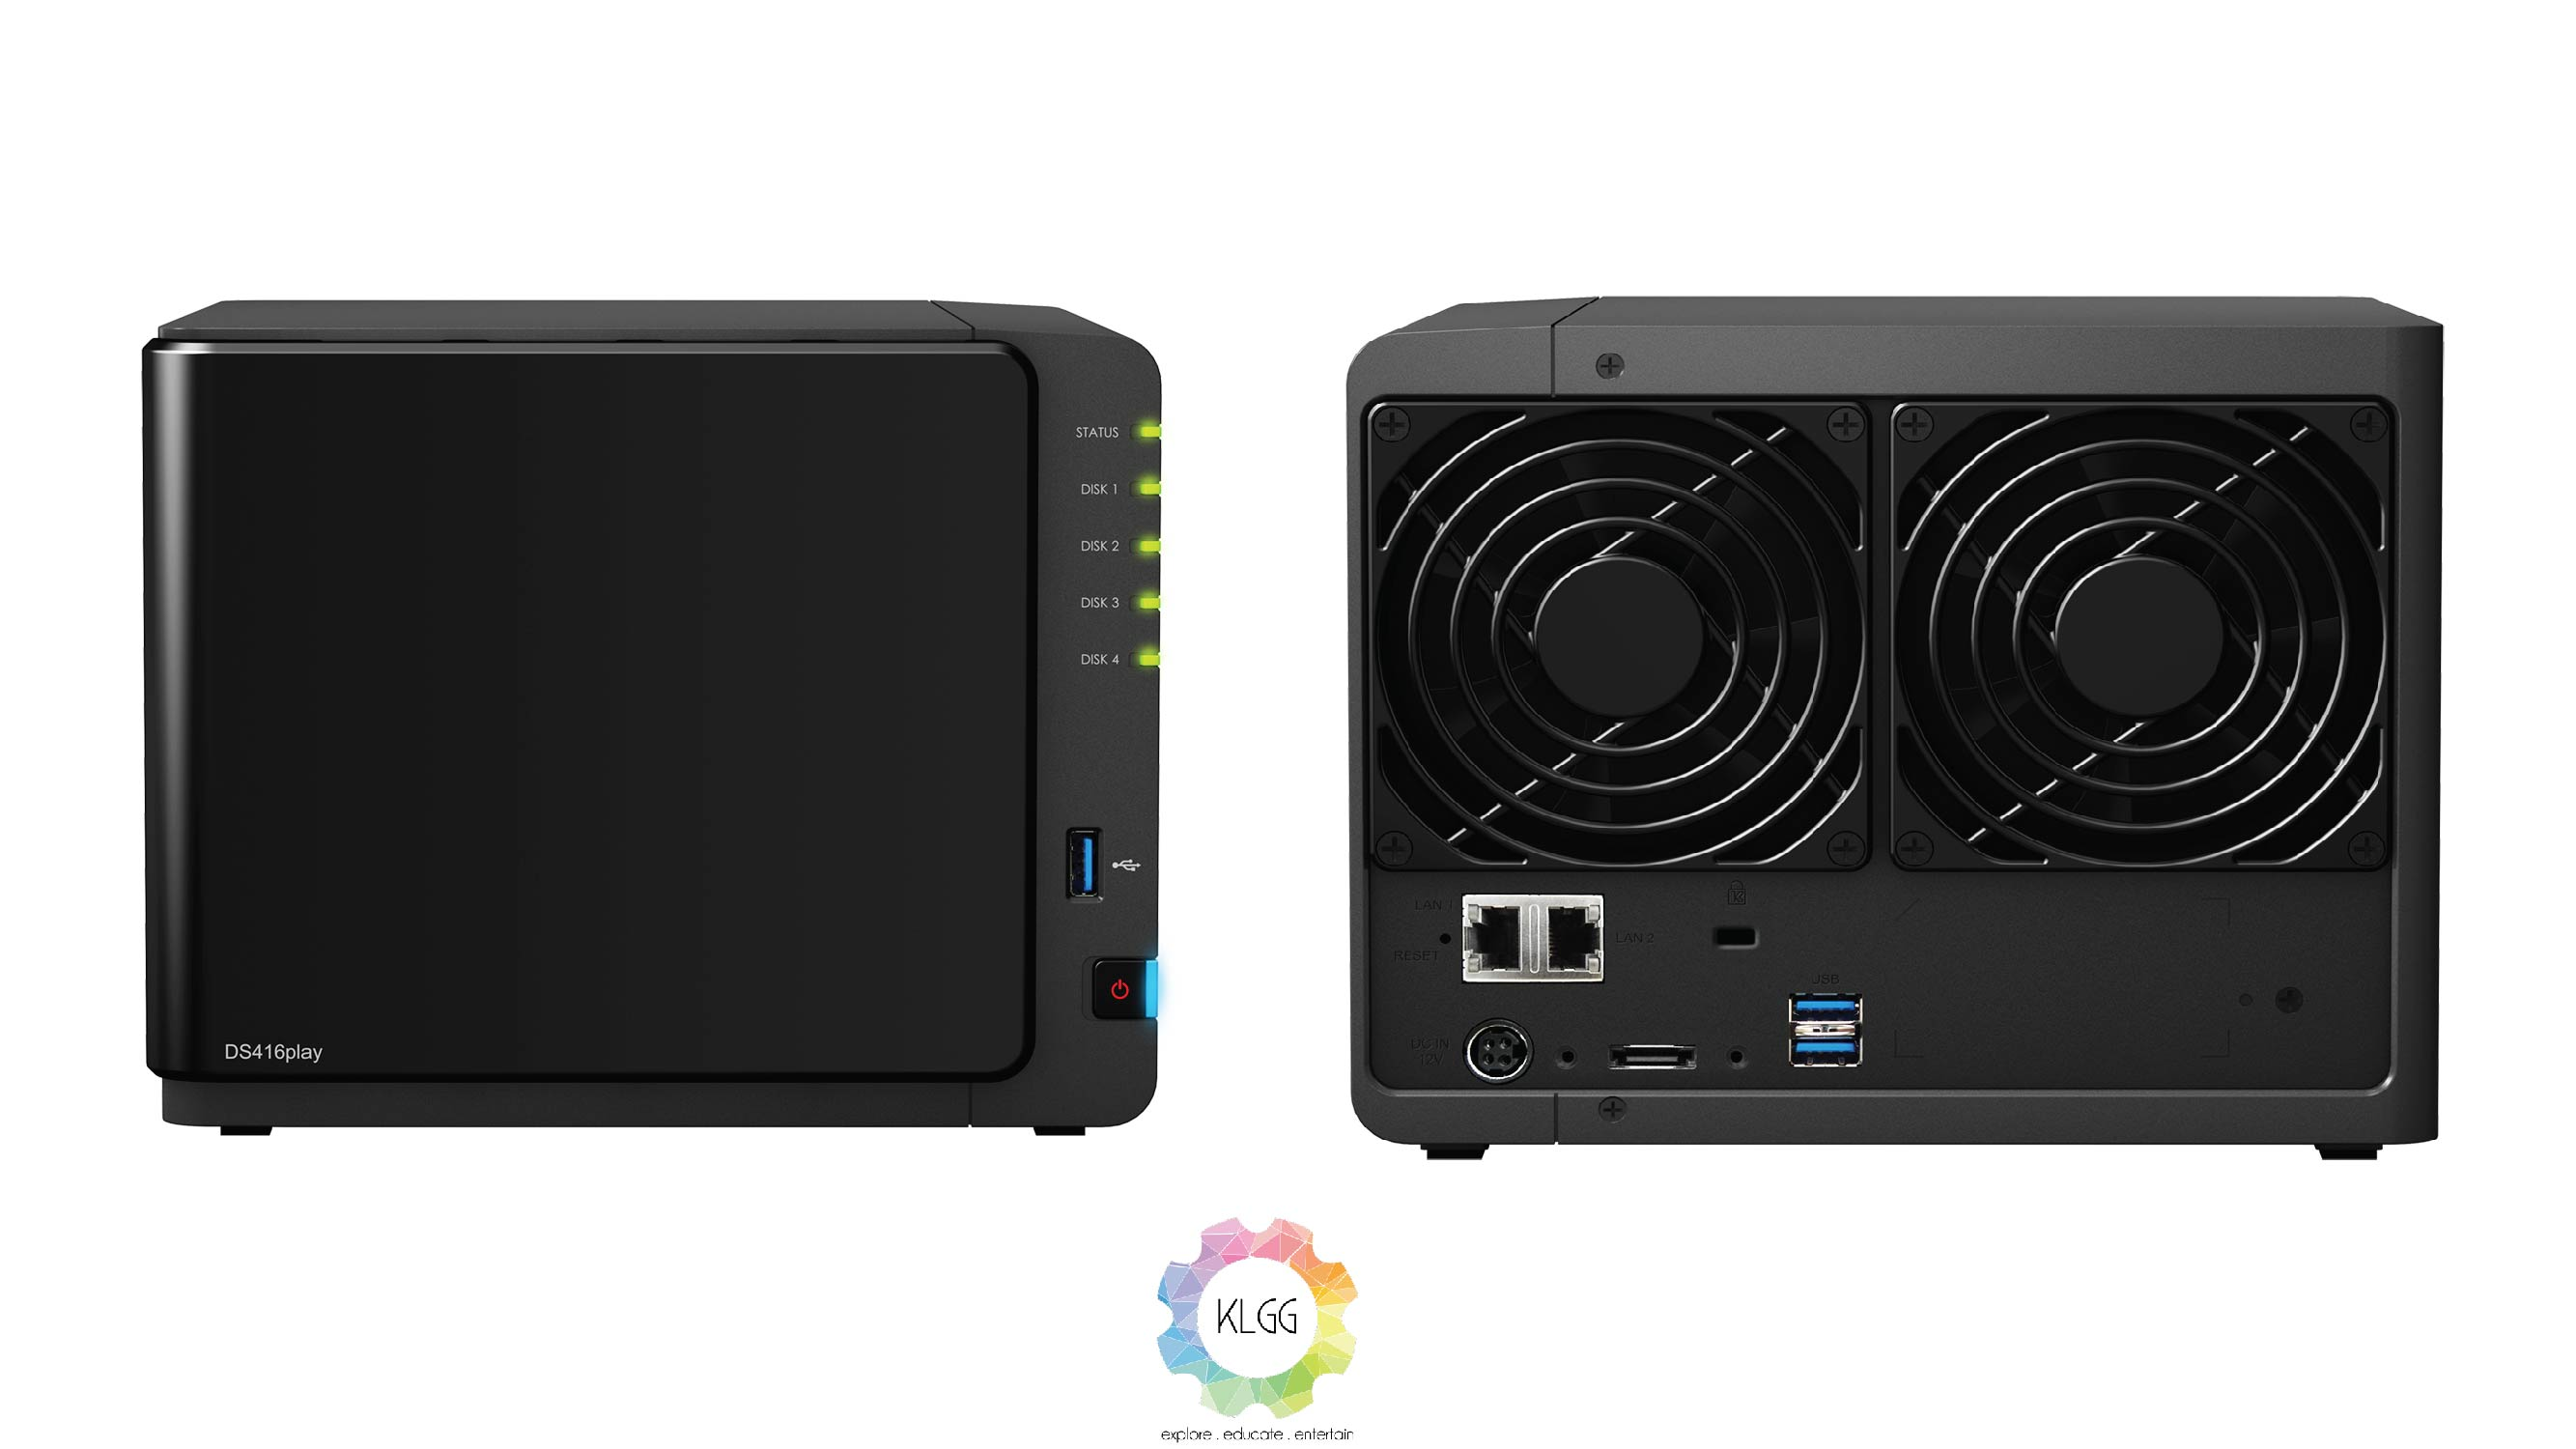 COMPUTEX 2016: Synology introduces new Intel powered DiskStation DS916+ and DS416play NAS servers 1